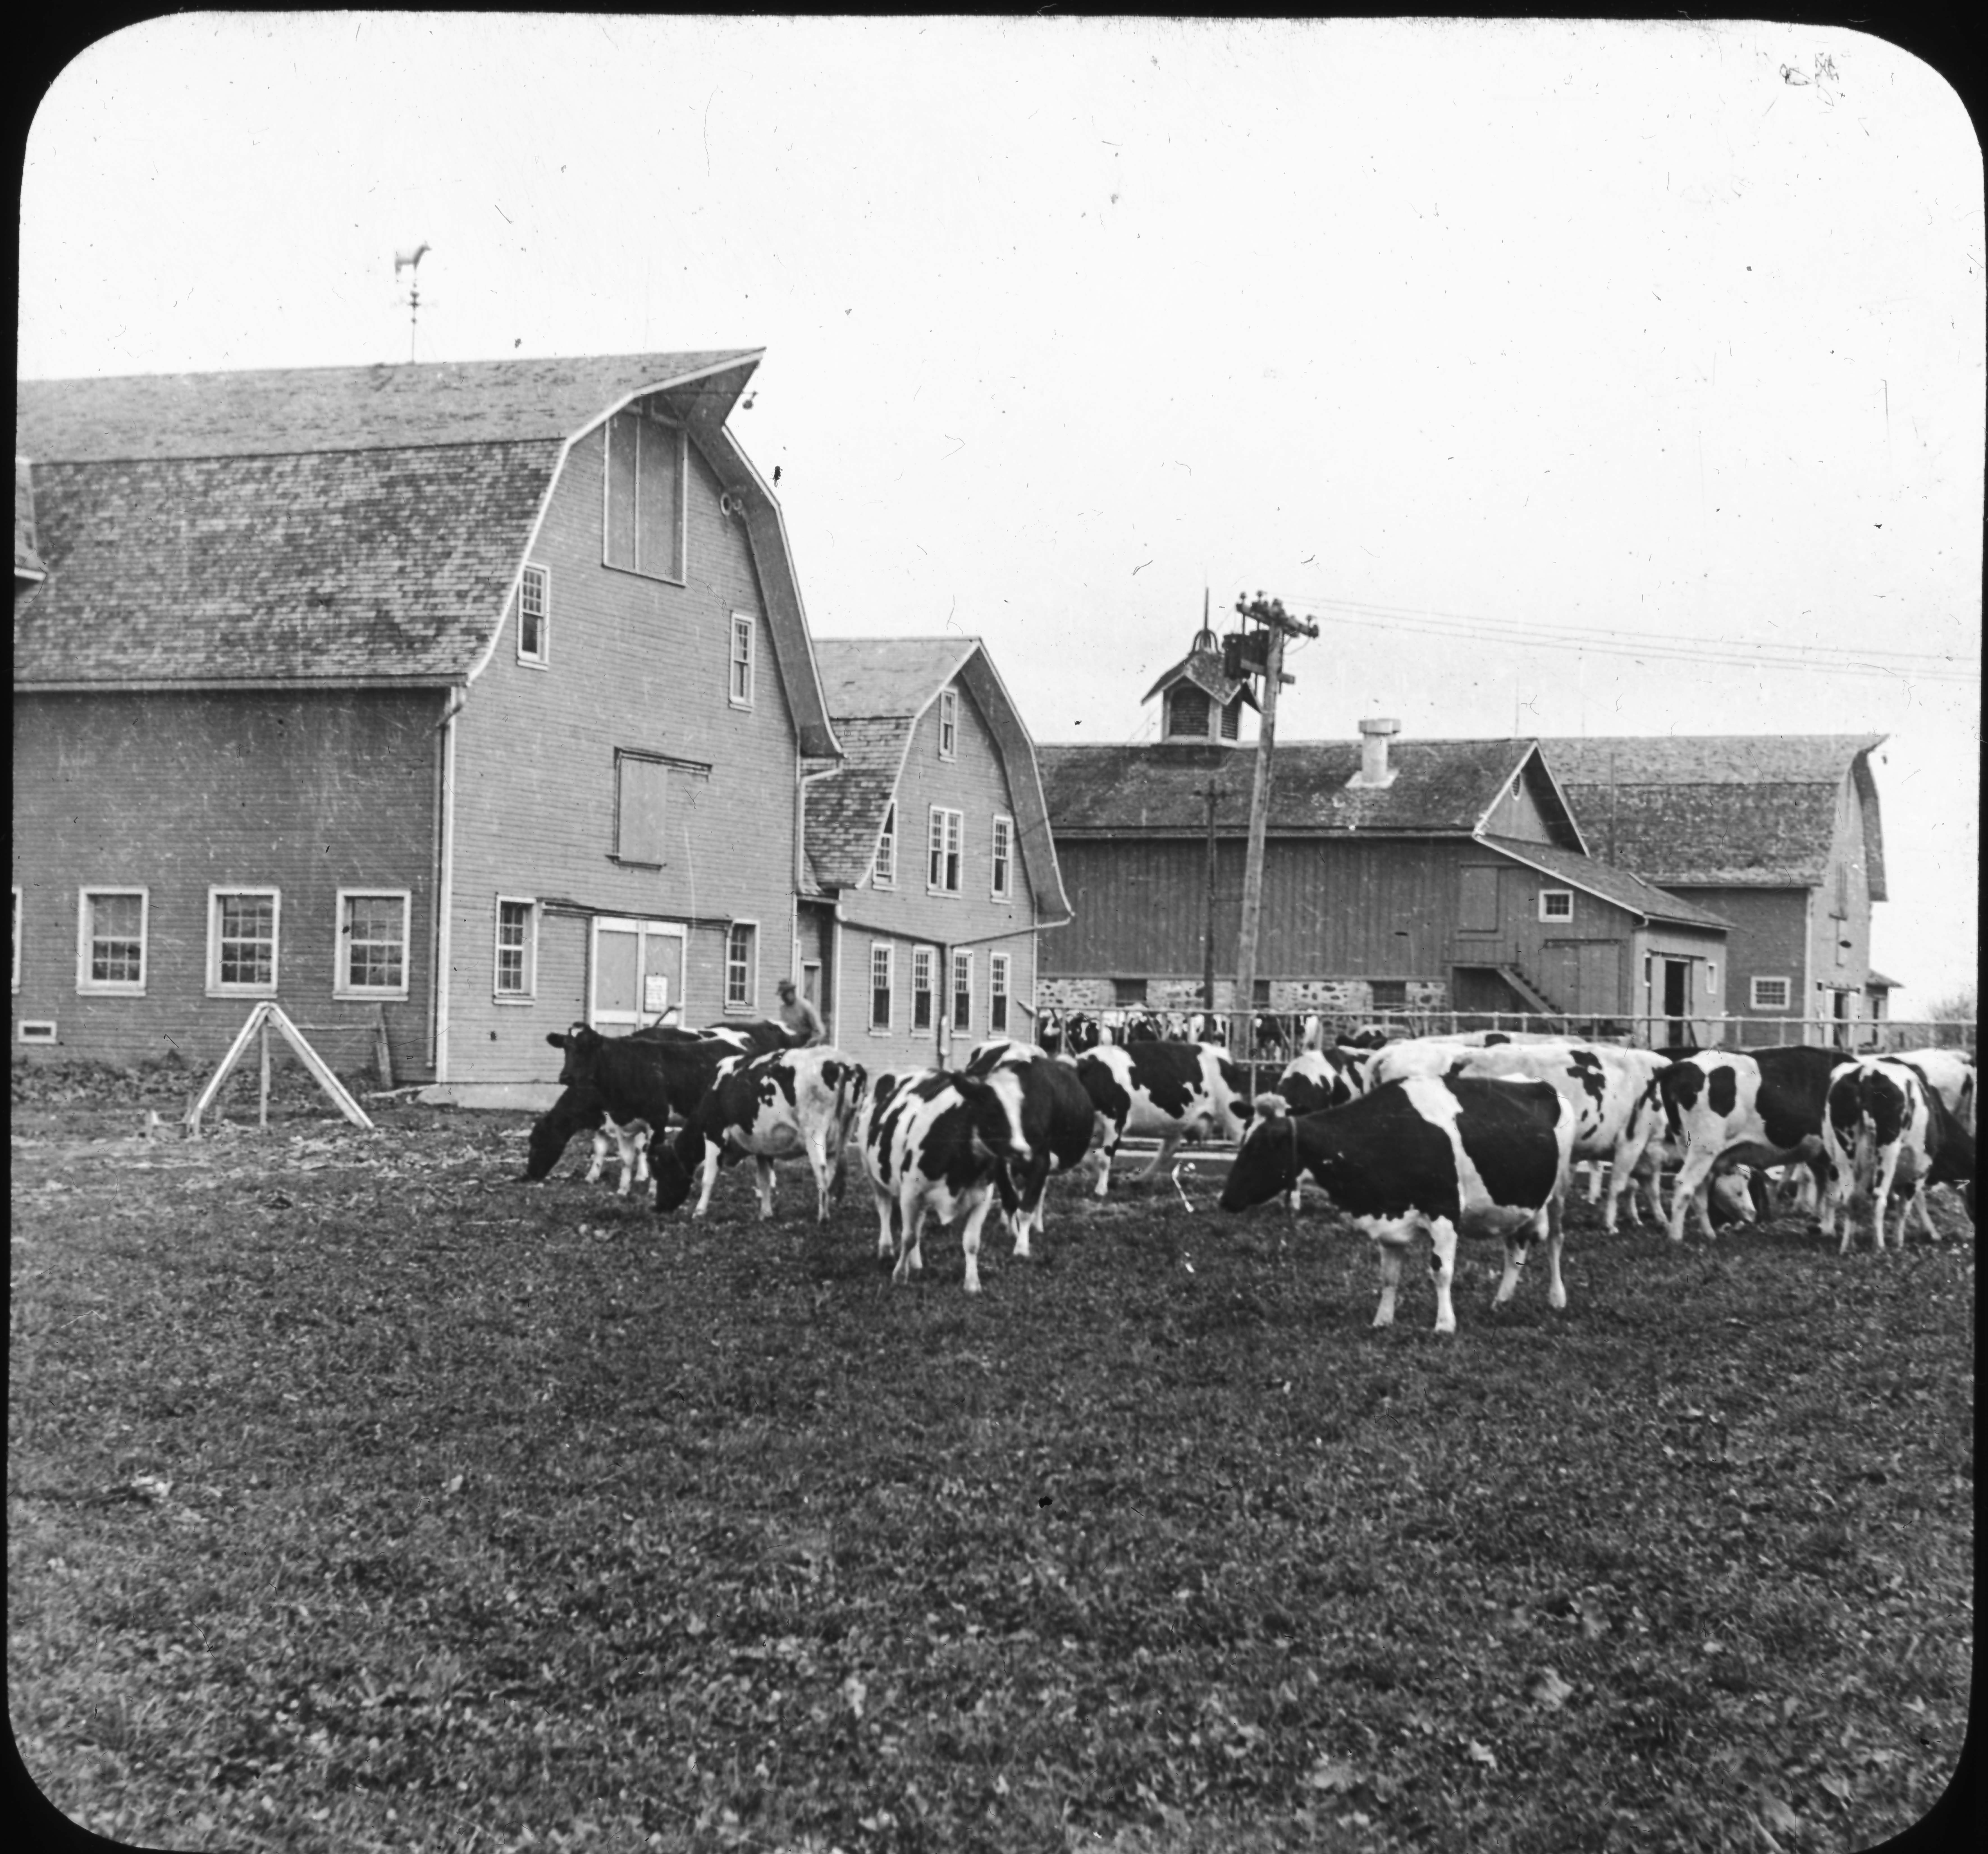 Dairy Barns and Herd of Holstein Cattle, Lakemills, Wis.